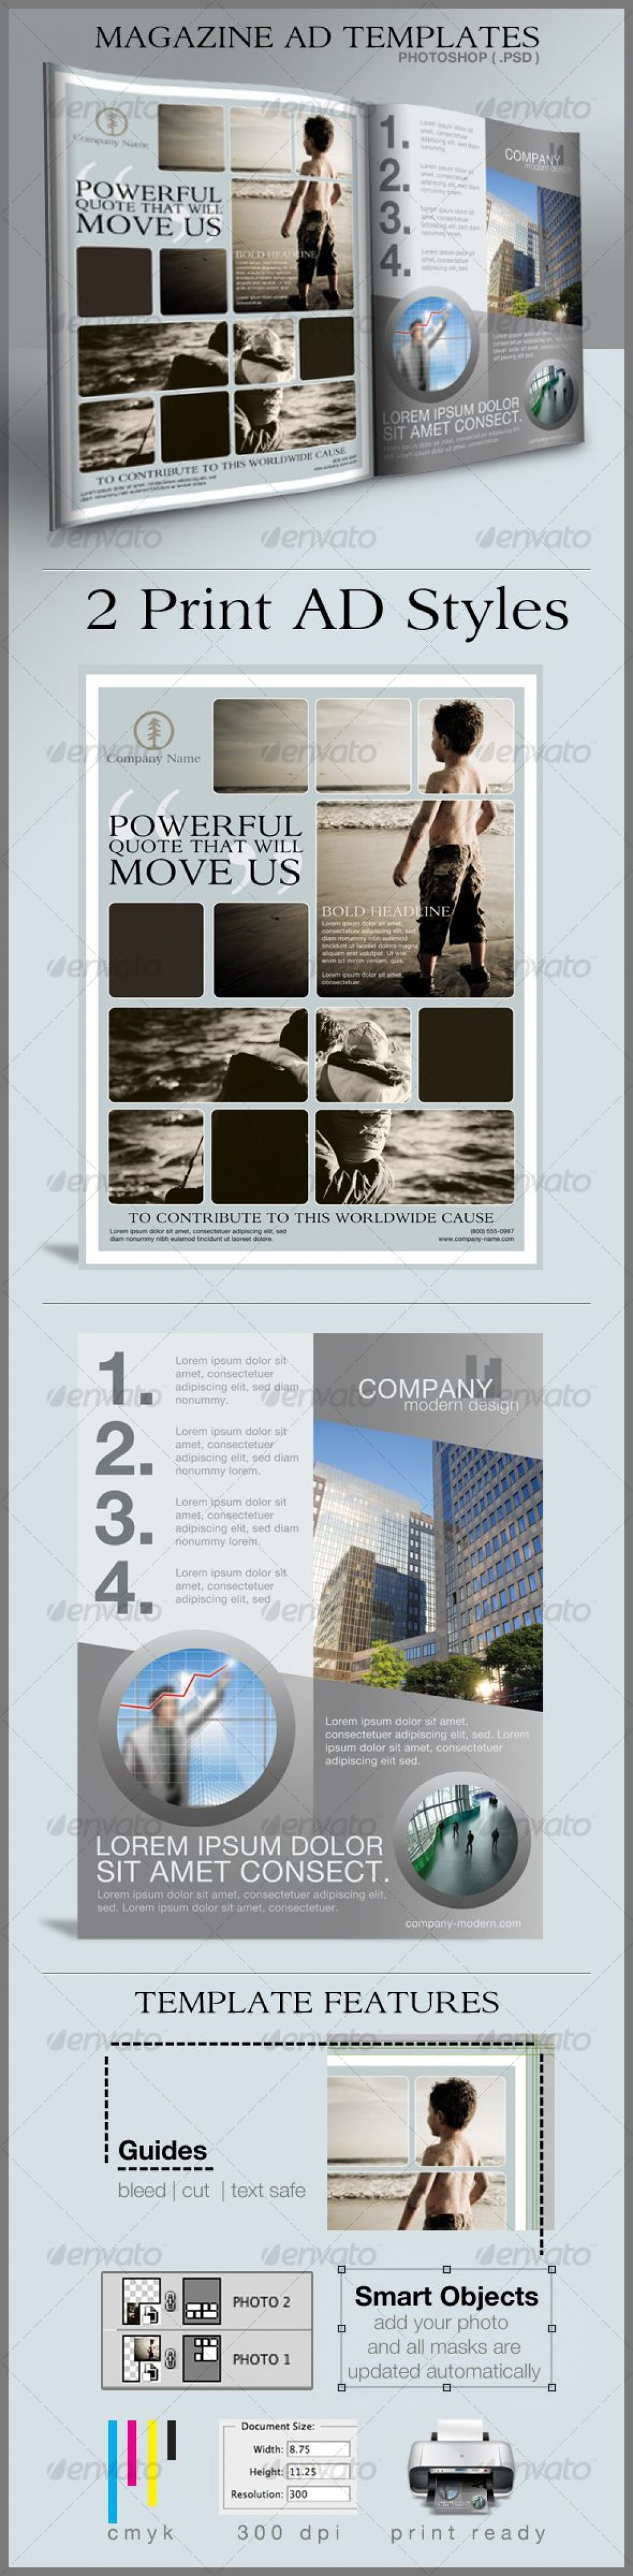 001 Best Free Print Ad Template Image  Templates Real Estate For WordLarge